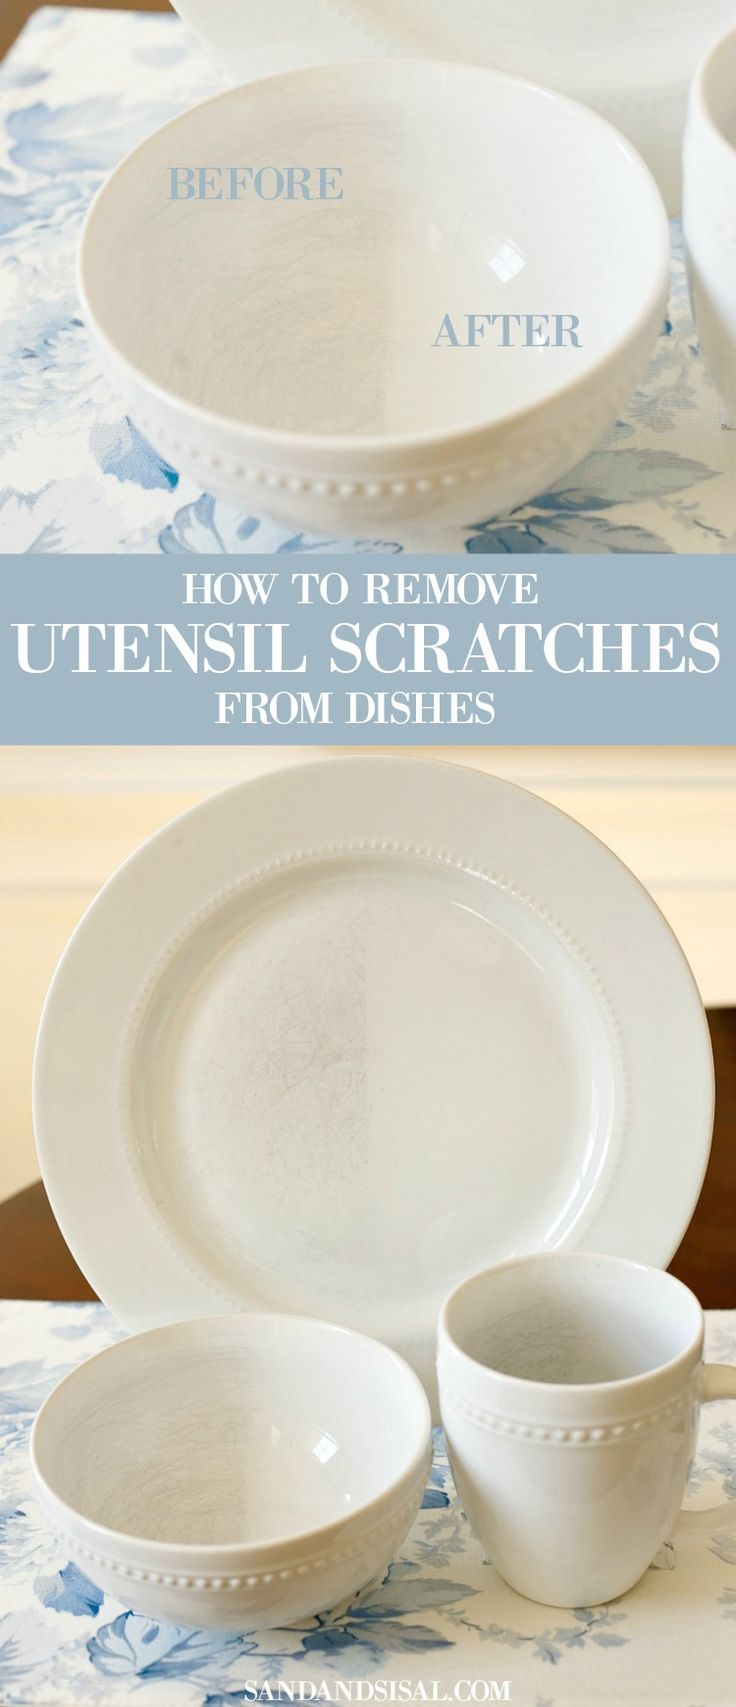 STOP! Don't throw away your dishes! Click through to learn How to Remove Utensil Scratches from Dishes! Seriously amazing. This will be one popular pin to put on your must try list!